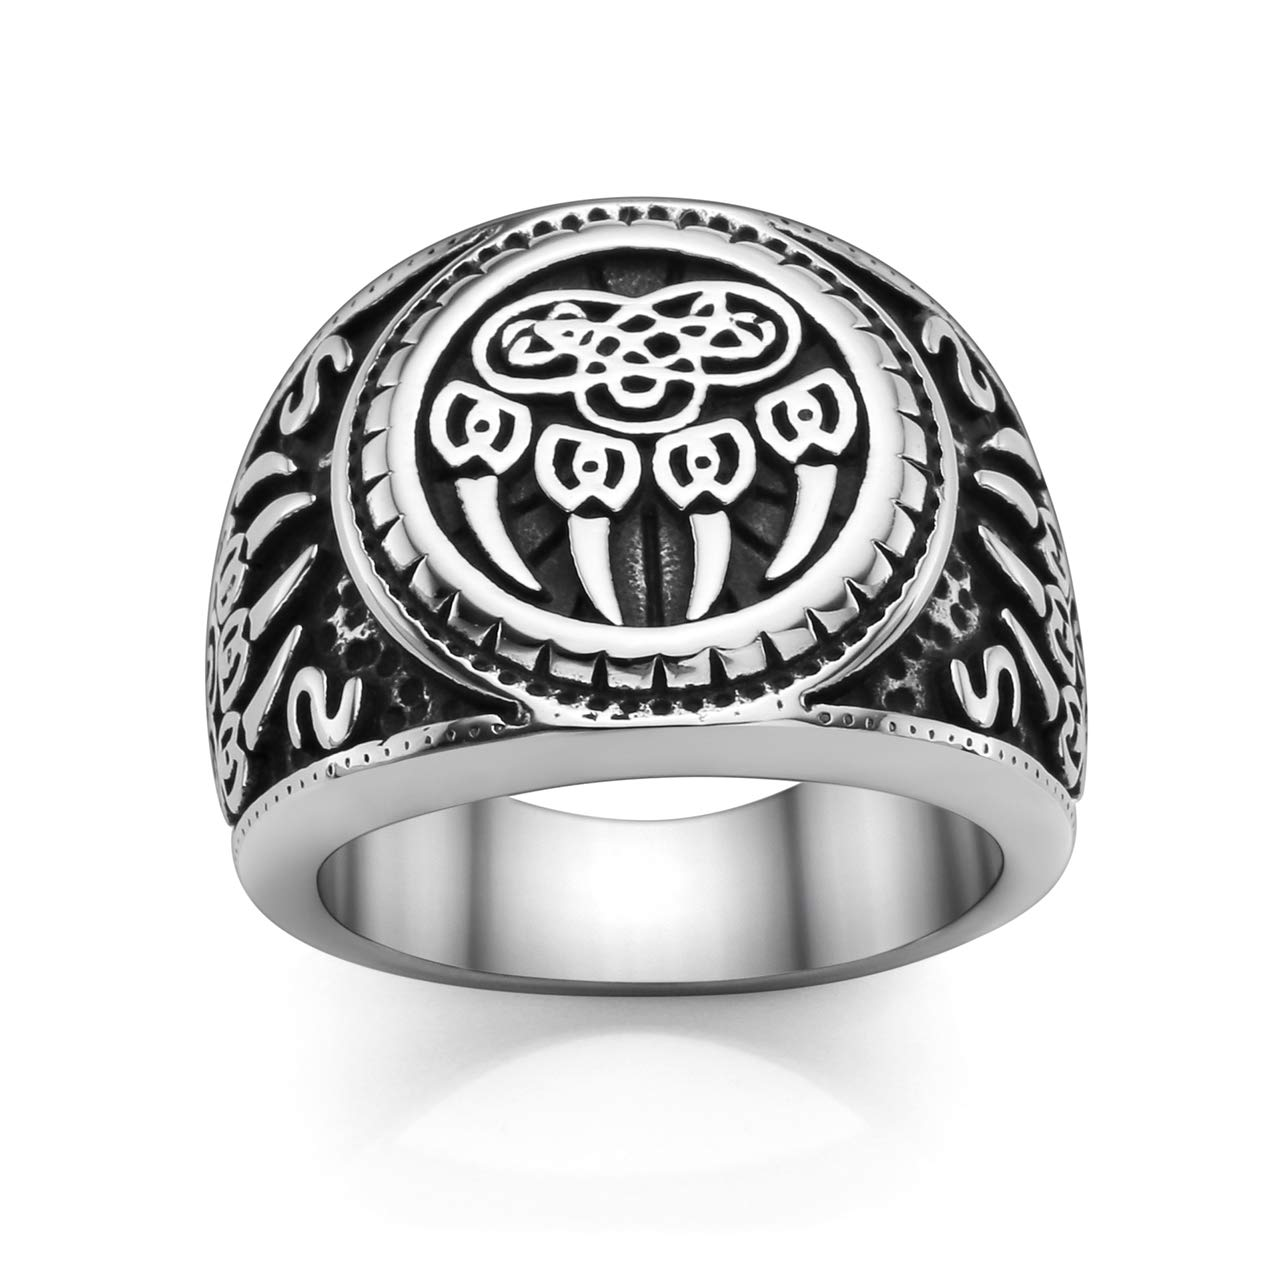 PiercingJ Men's Stainless Steel Viking Norse Celtic Knot Pagan Slavic Nordic Wolf Bear Paw Claw Veles Symbol Men Biker Signet Ring Size 9-13 by PiercingJ (Image #1)